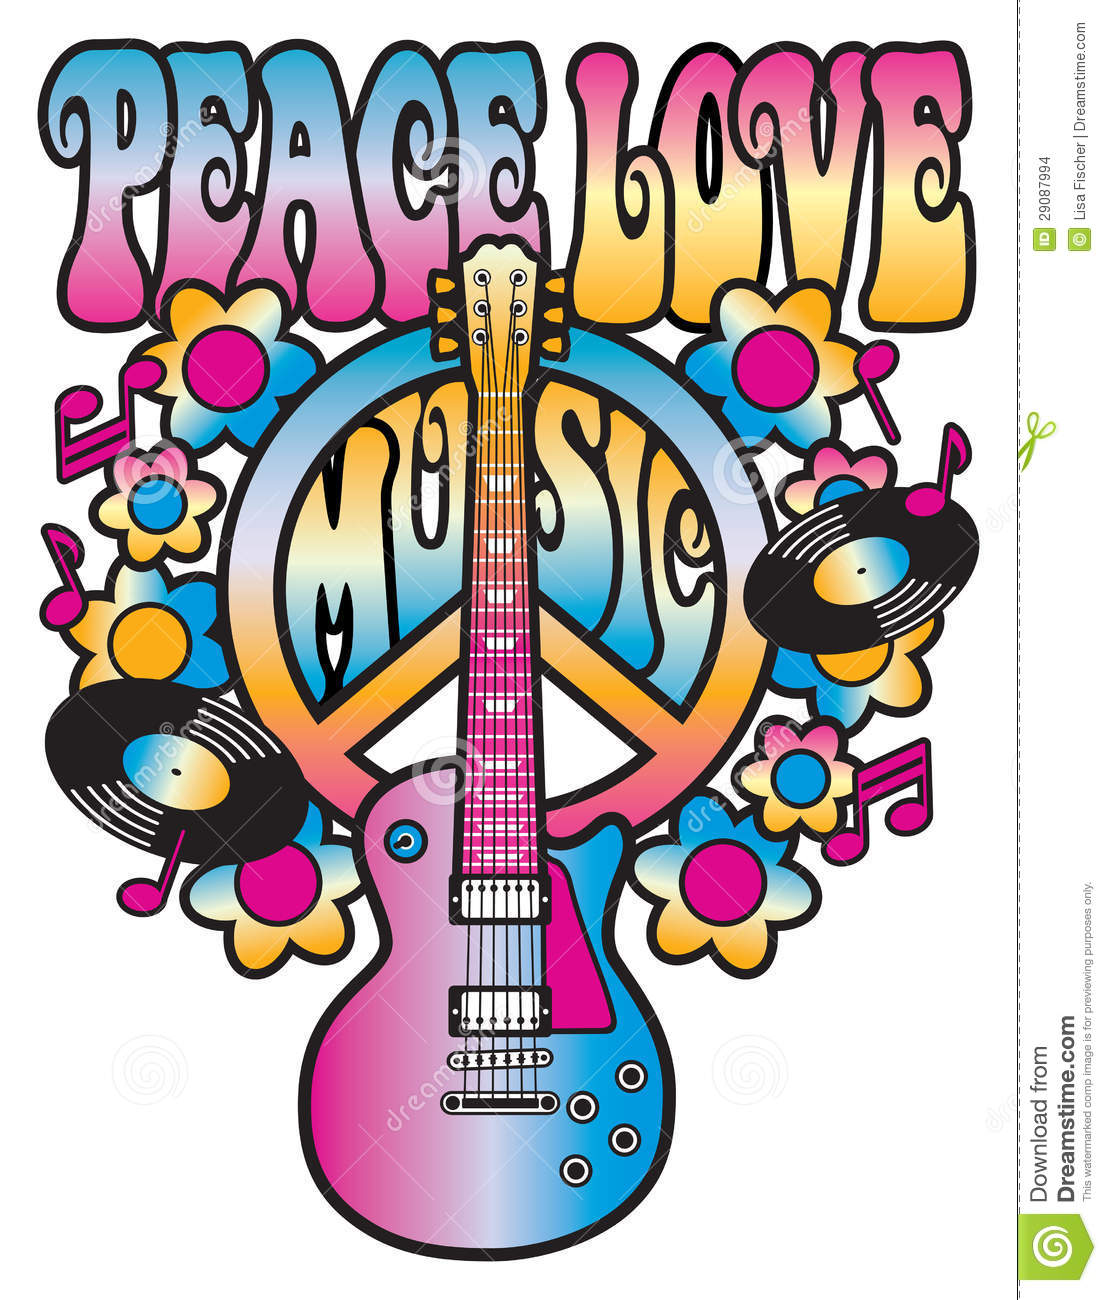 peace love music quotes quotesgram mother earth clipart drawings save mother earth clip art